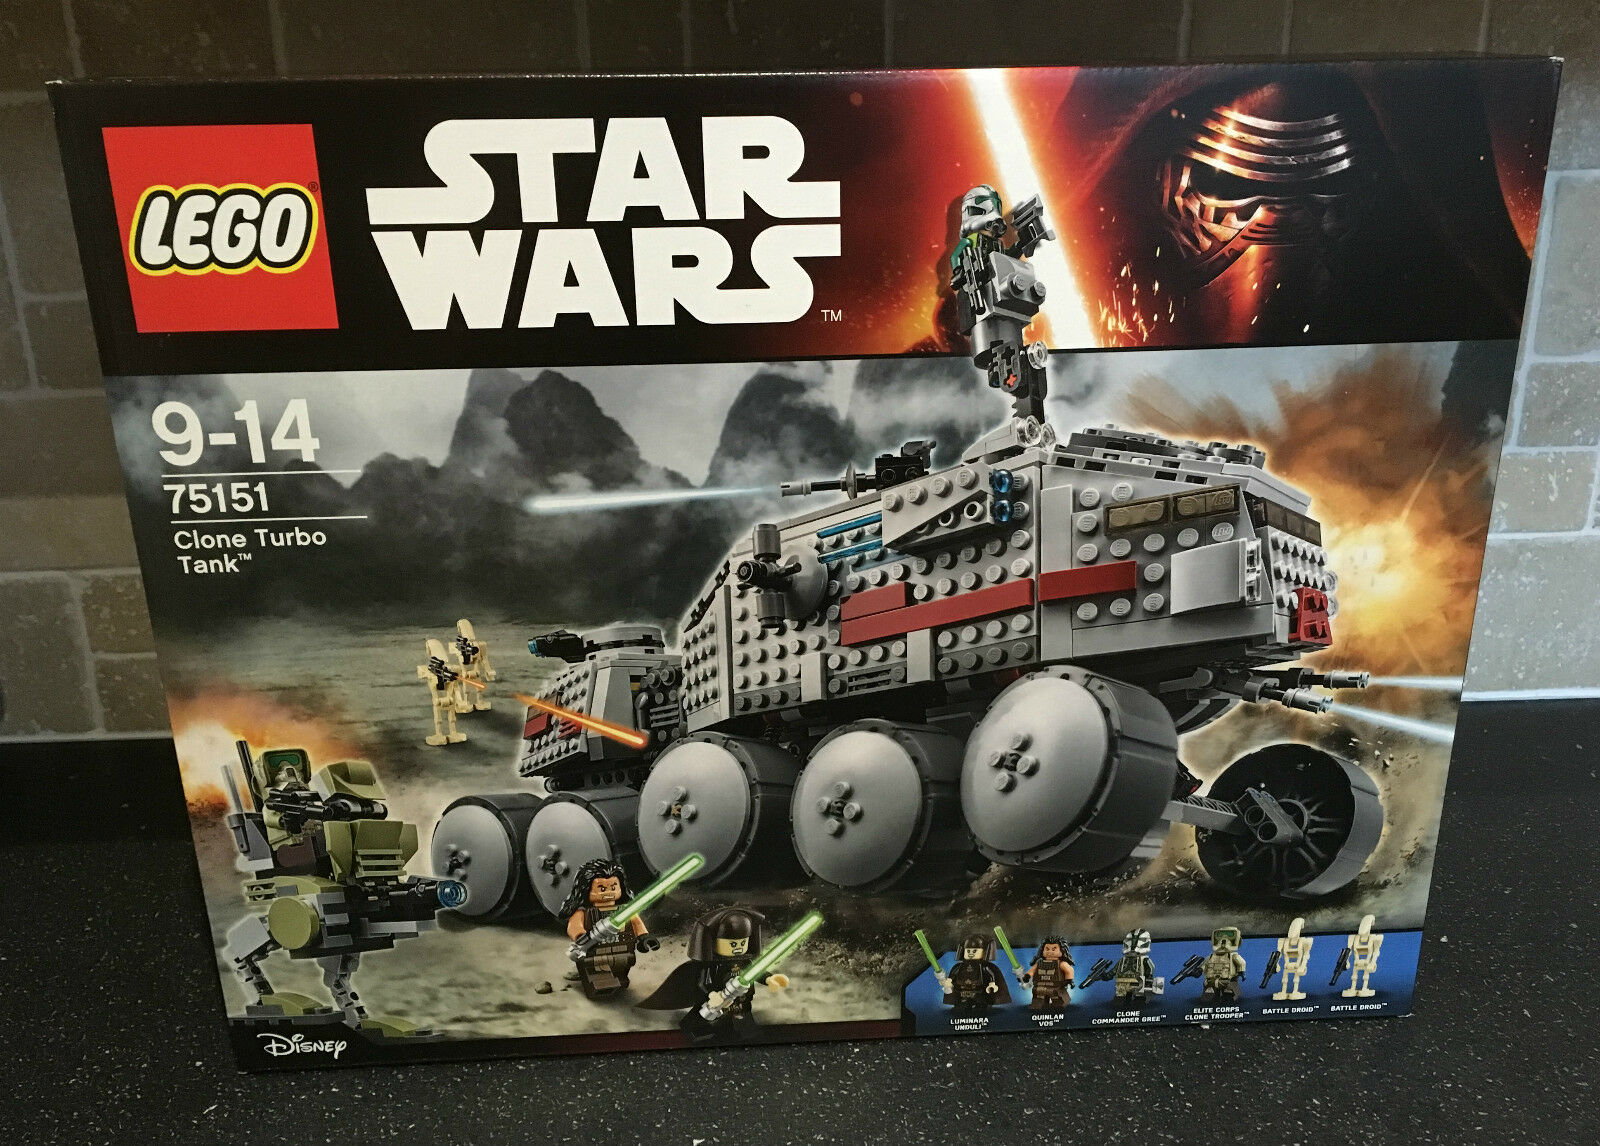 LEGO STAR WARS - 75151 Clone Turbo Tank Brand New In Sealed Box